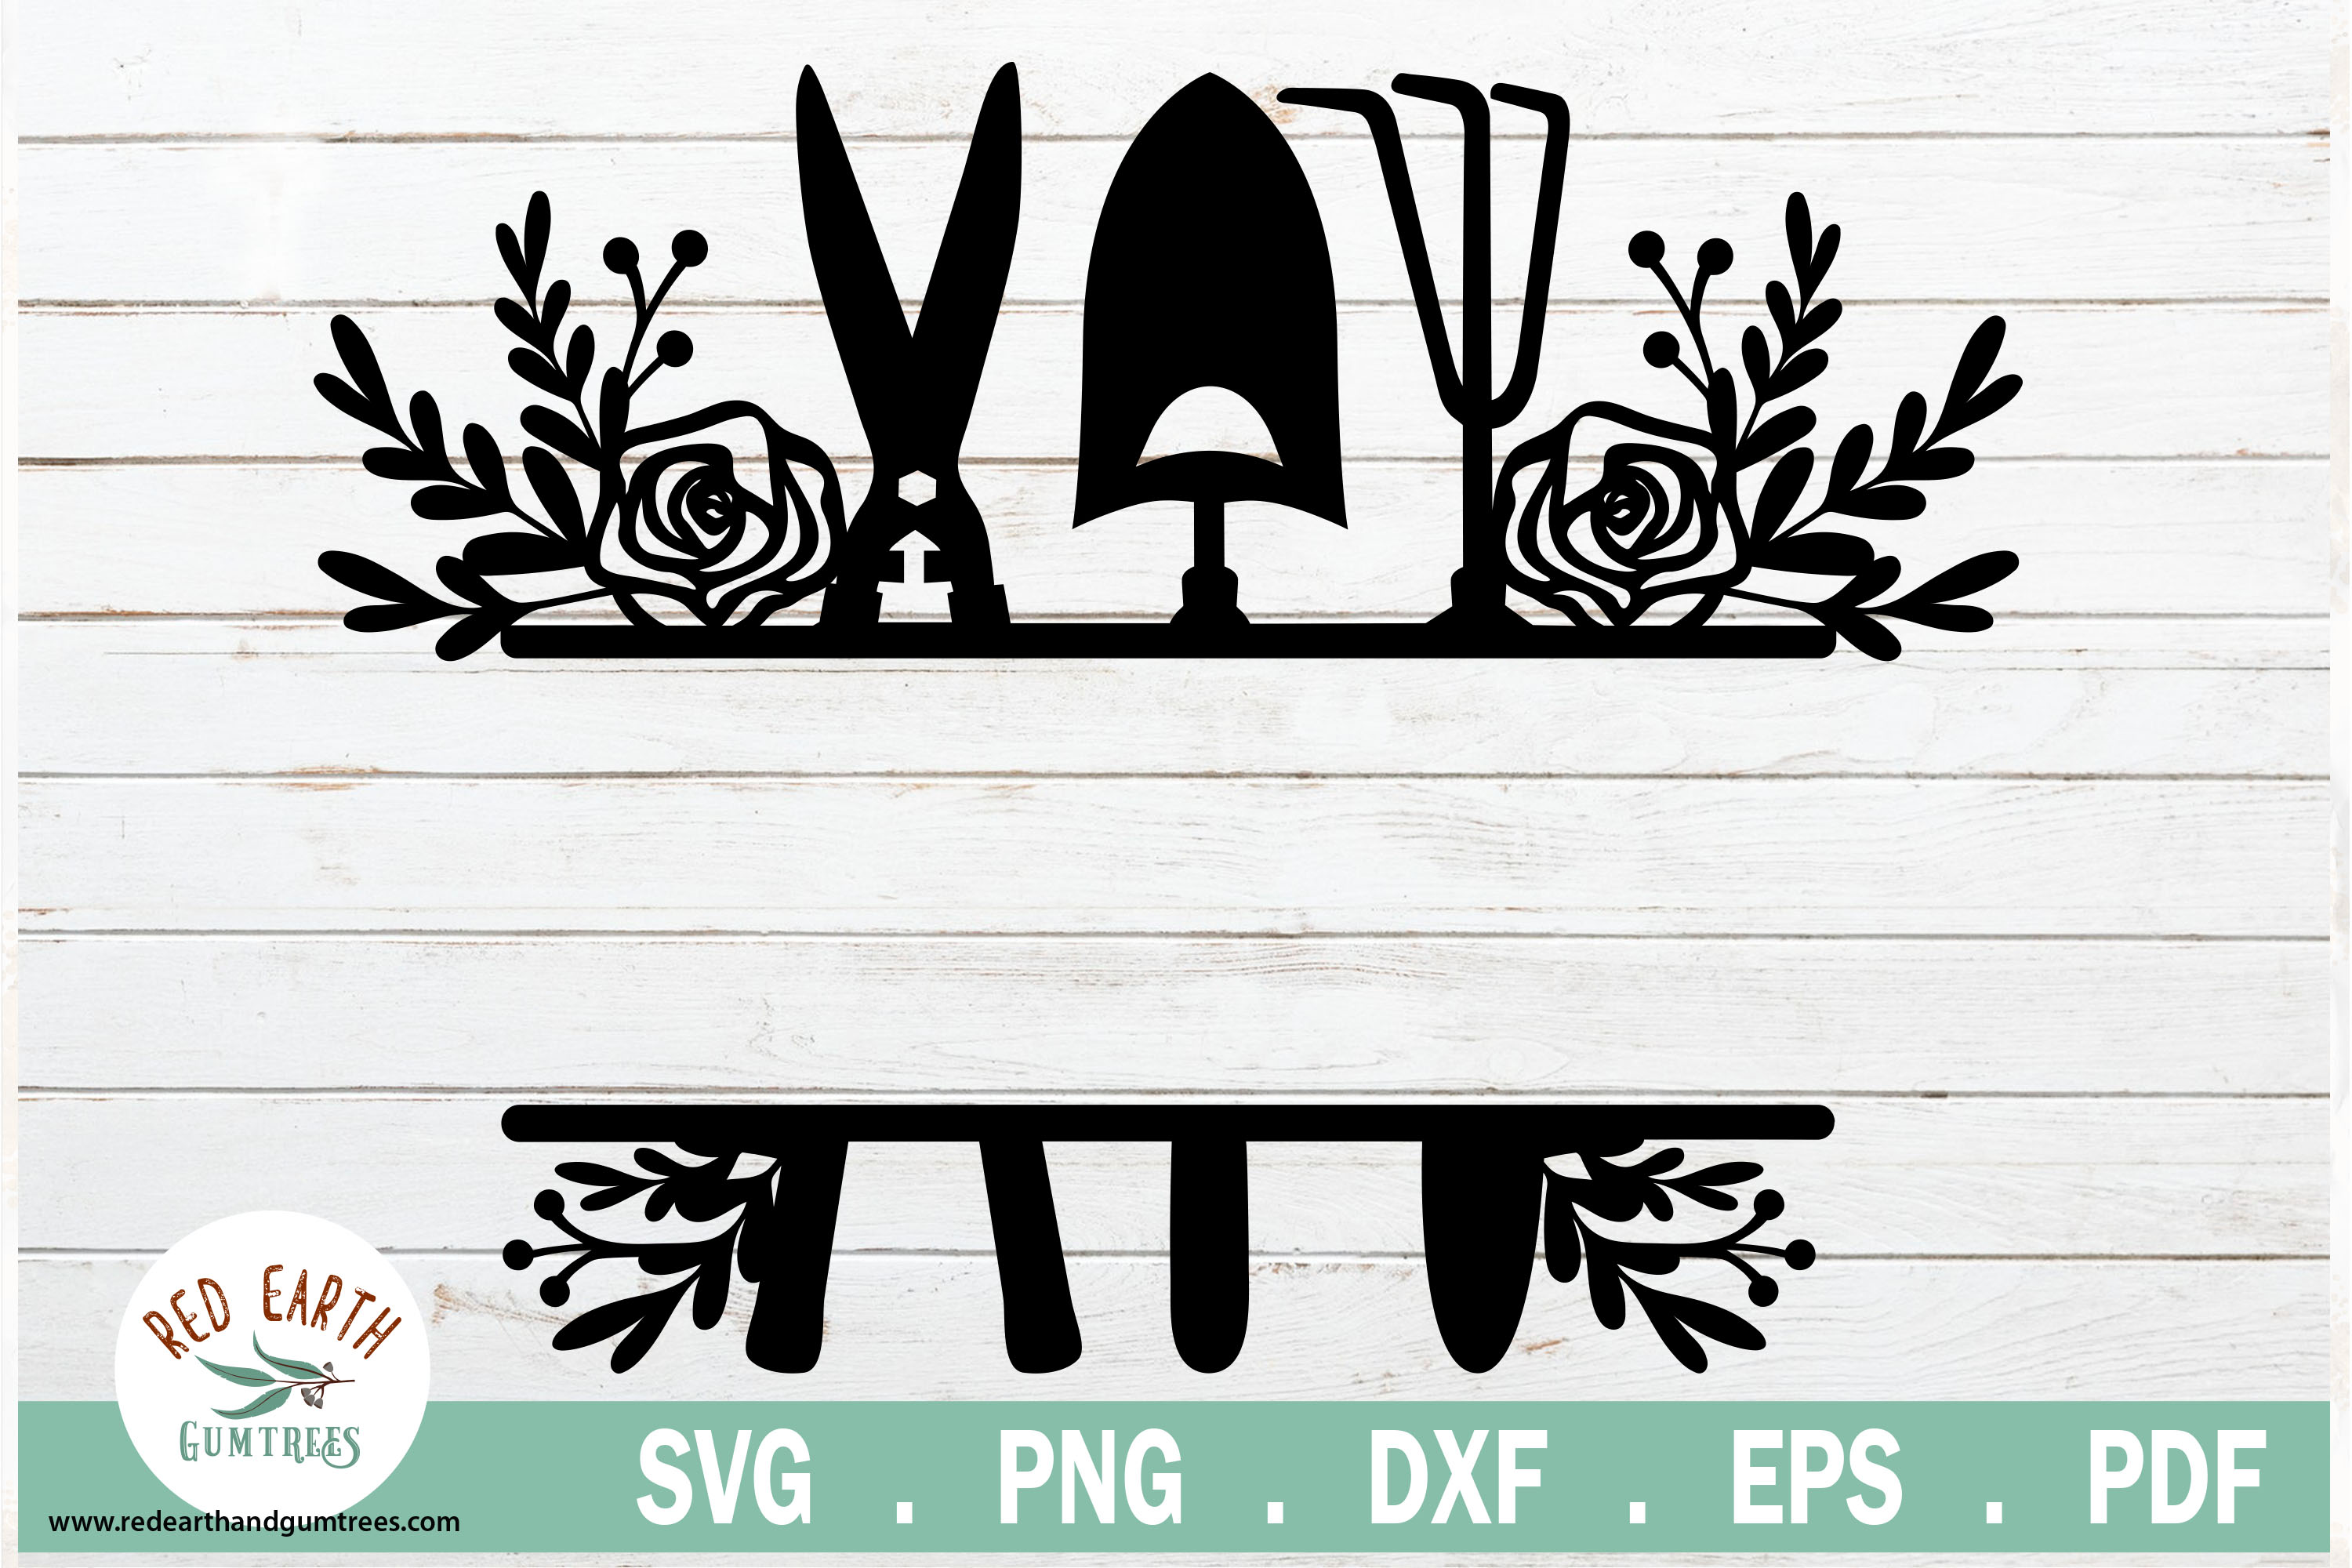 Floral Garden Tools Split Monogram Frame Graphic By Redearth And